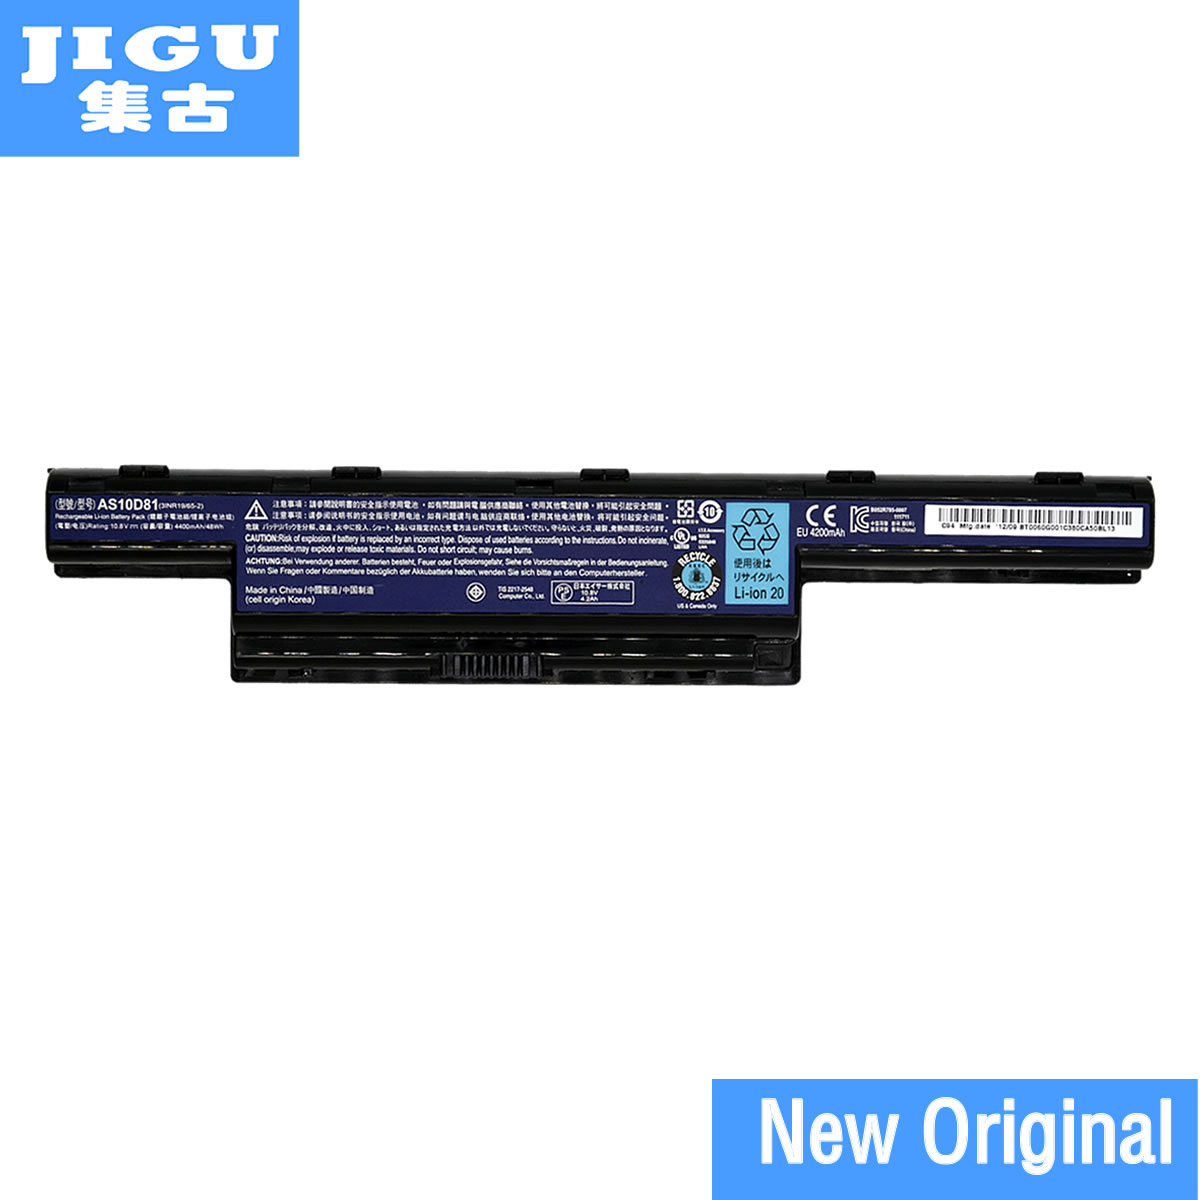 JIGU AS10D71 AS10D75 AS10D81 Original Laptop Battery For ACER V3-551 V3-551G V3-571 V3-571G V3-731 V3-771G E1-471G weidefusiyuan laptop sata converter adapter hdd connector socket for acer e1 421 e1 431 e1 431g e1 471g ec 471g v3 471g